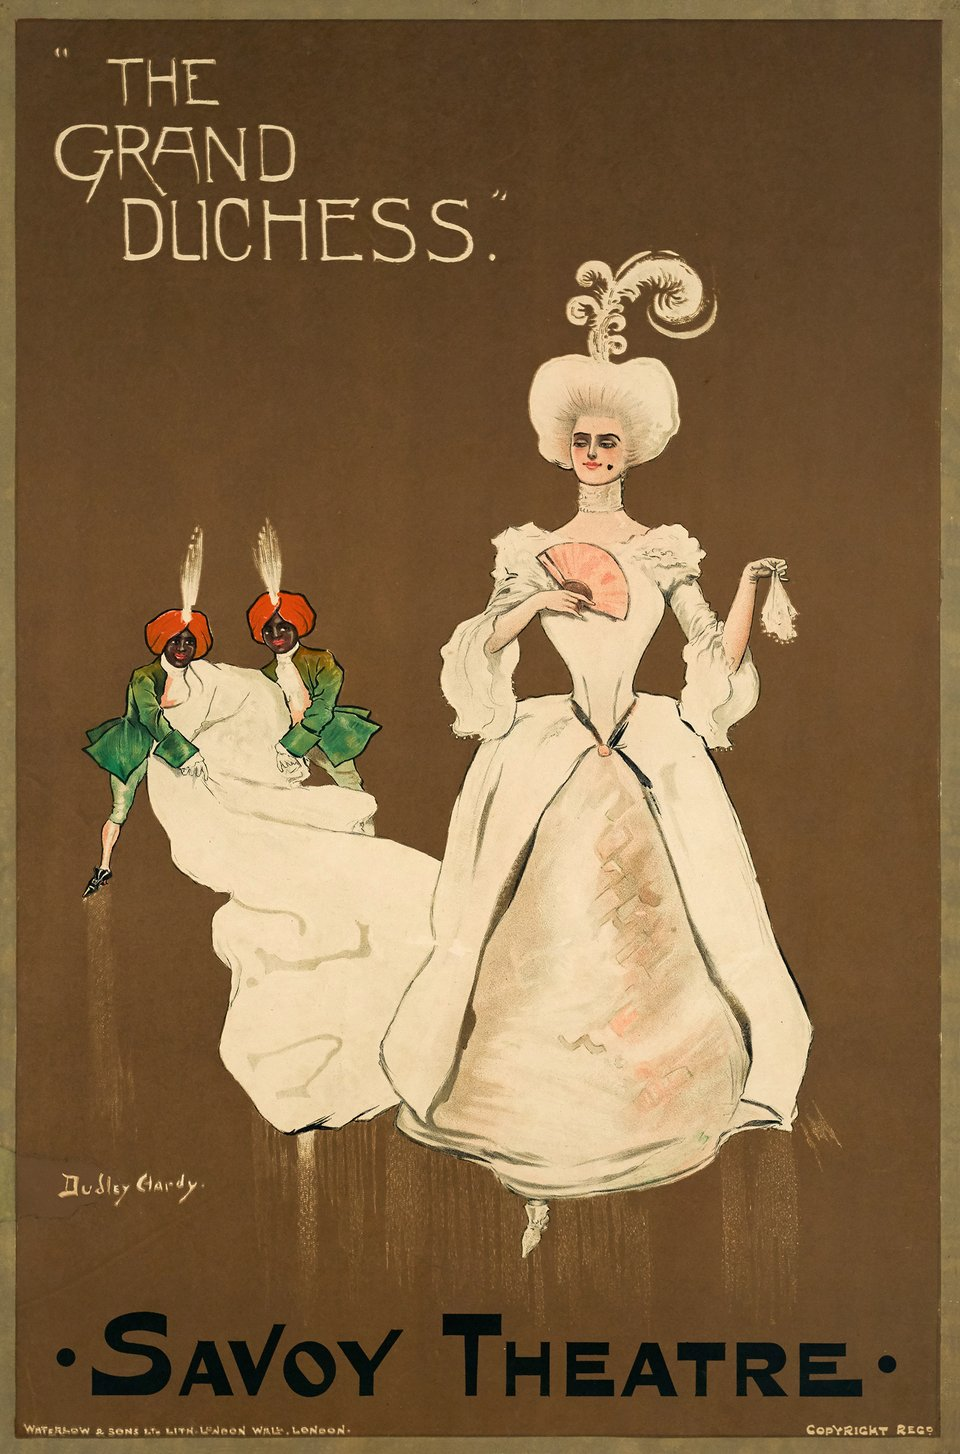 The Grand Duchess, Savoy Theatre – Vintage poster – Dudley HARDY – 1897